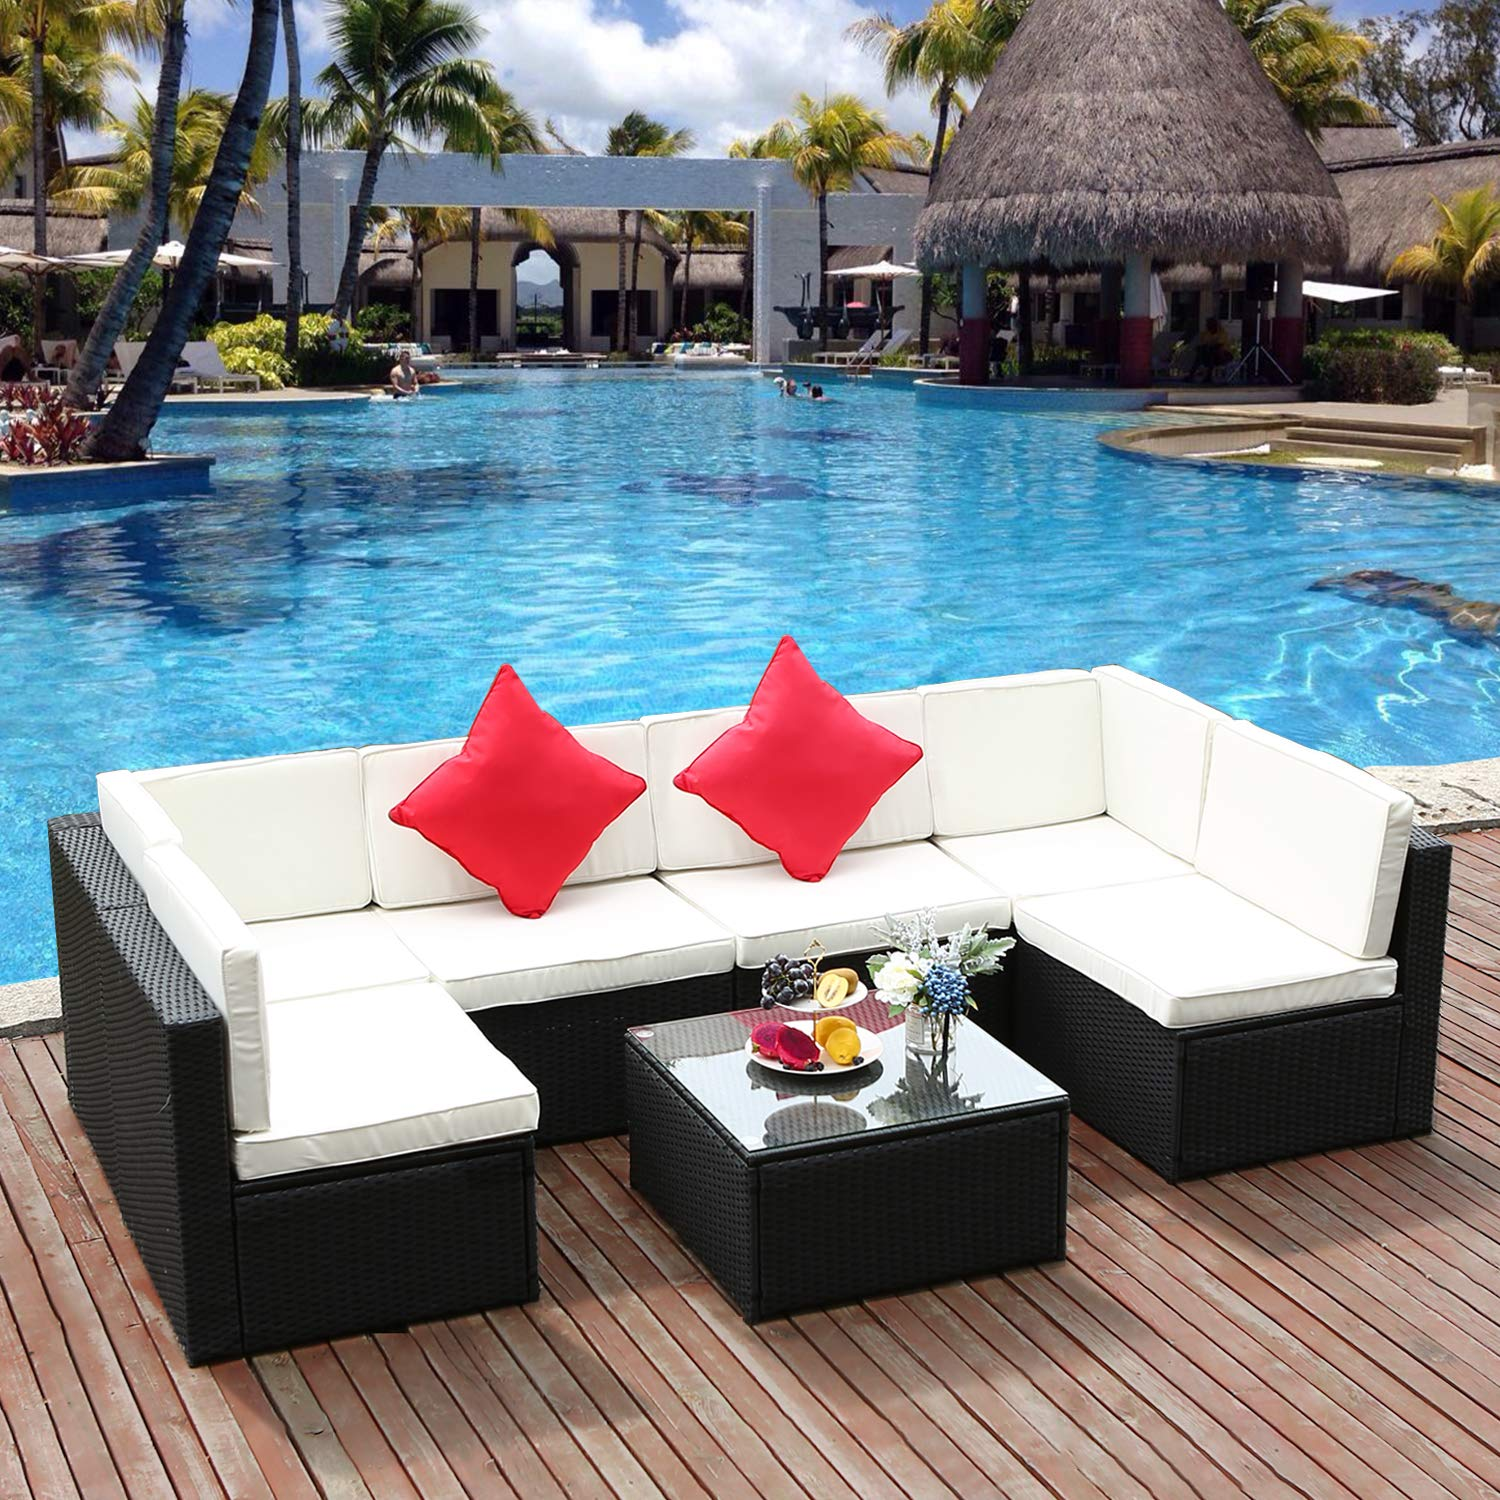 M W 7 Pieces Patio Sofa Set, PE Wicker Rattan Outdoor Sectional Furniture, 6 Cushioned Chairs and 1 Glass Coffee Table for Lawn Garden Backyard Pool